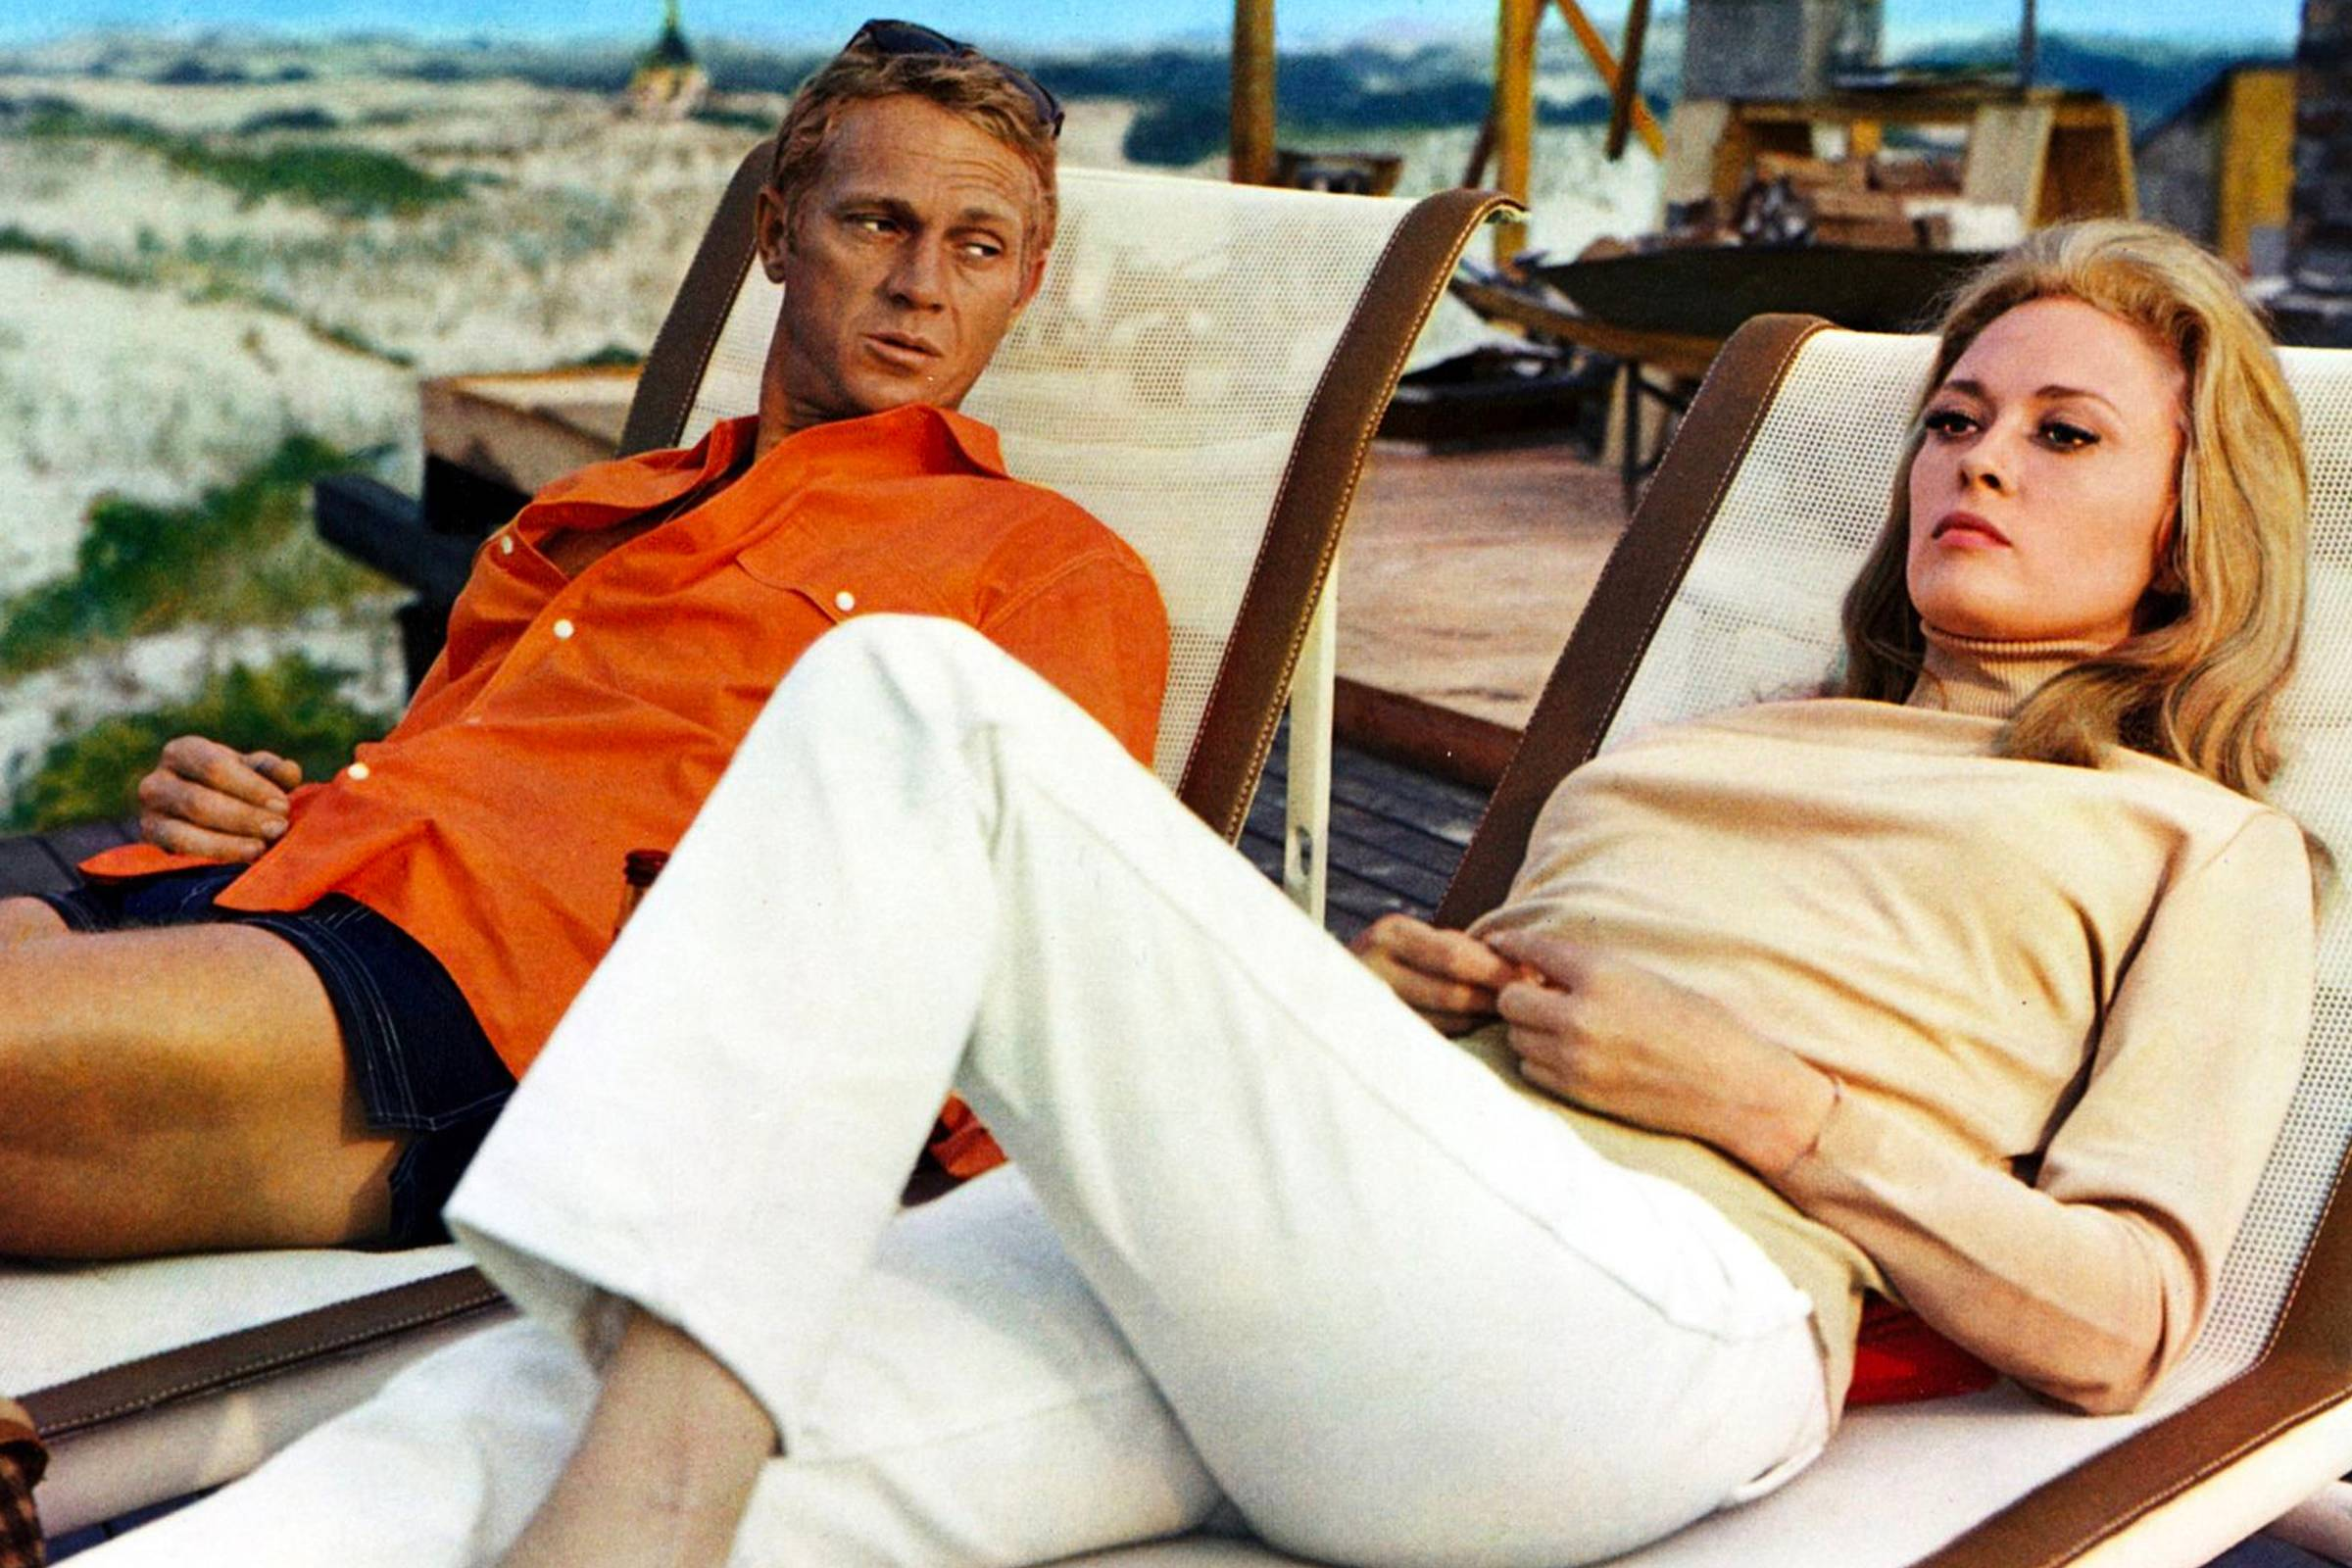 A Tale of Two Affairs: Comparing the Fashion of The Thomas Crown Affair (1968) to The Thomas Crown Affair (1999)